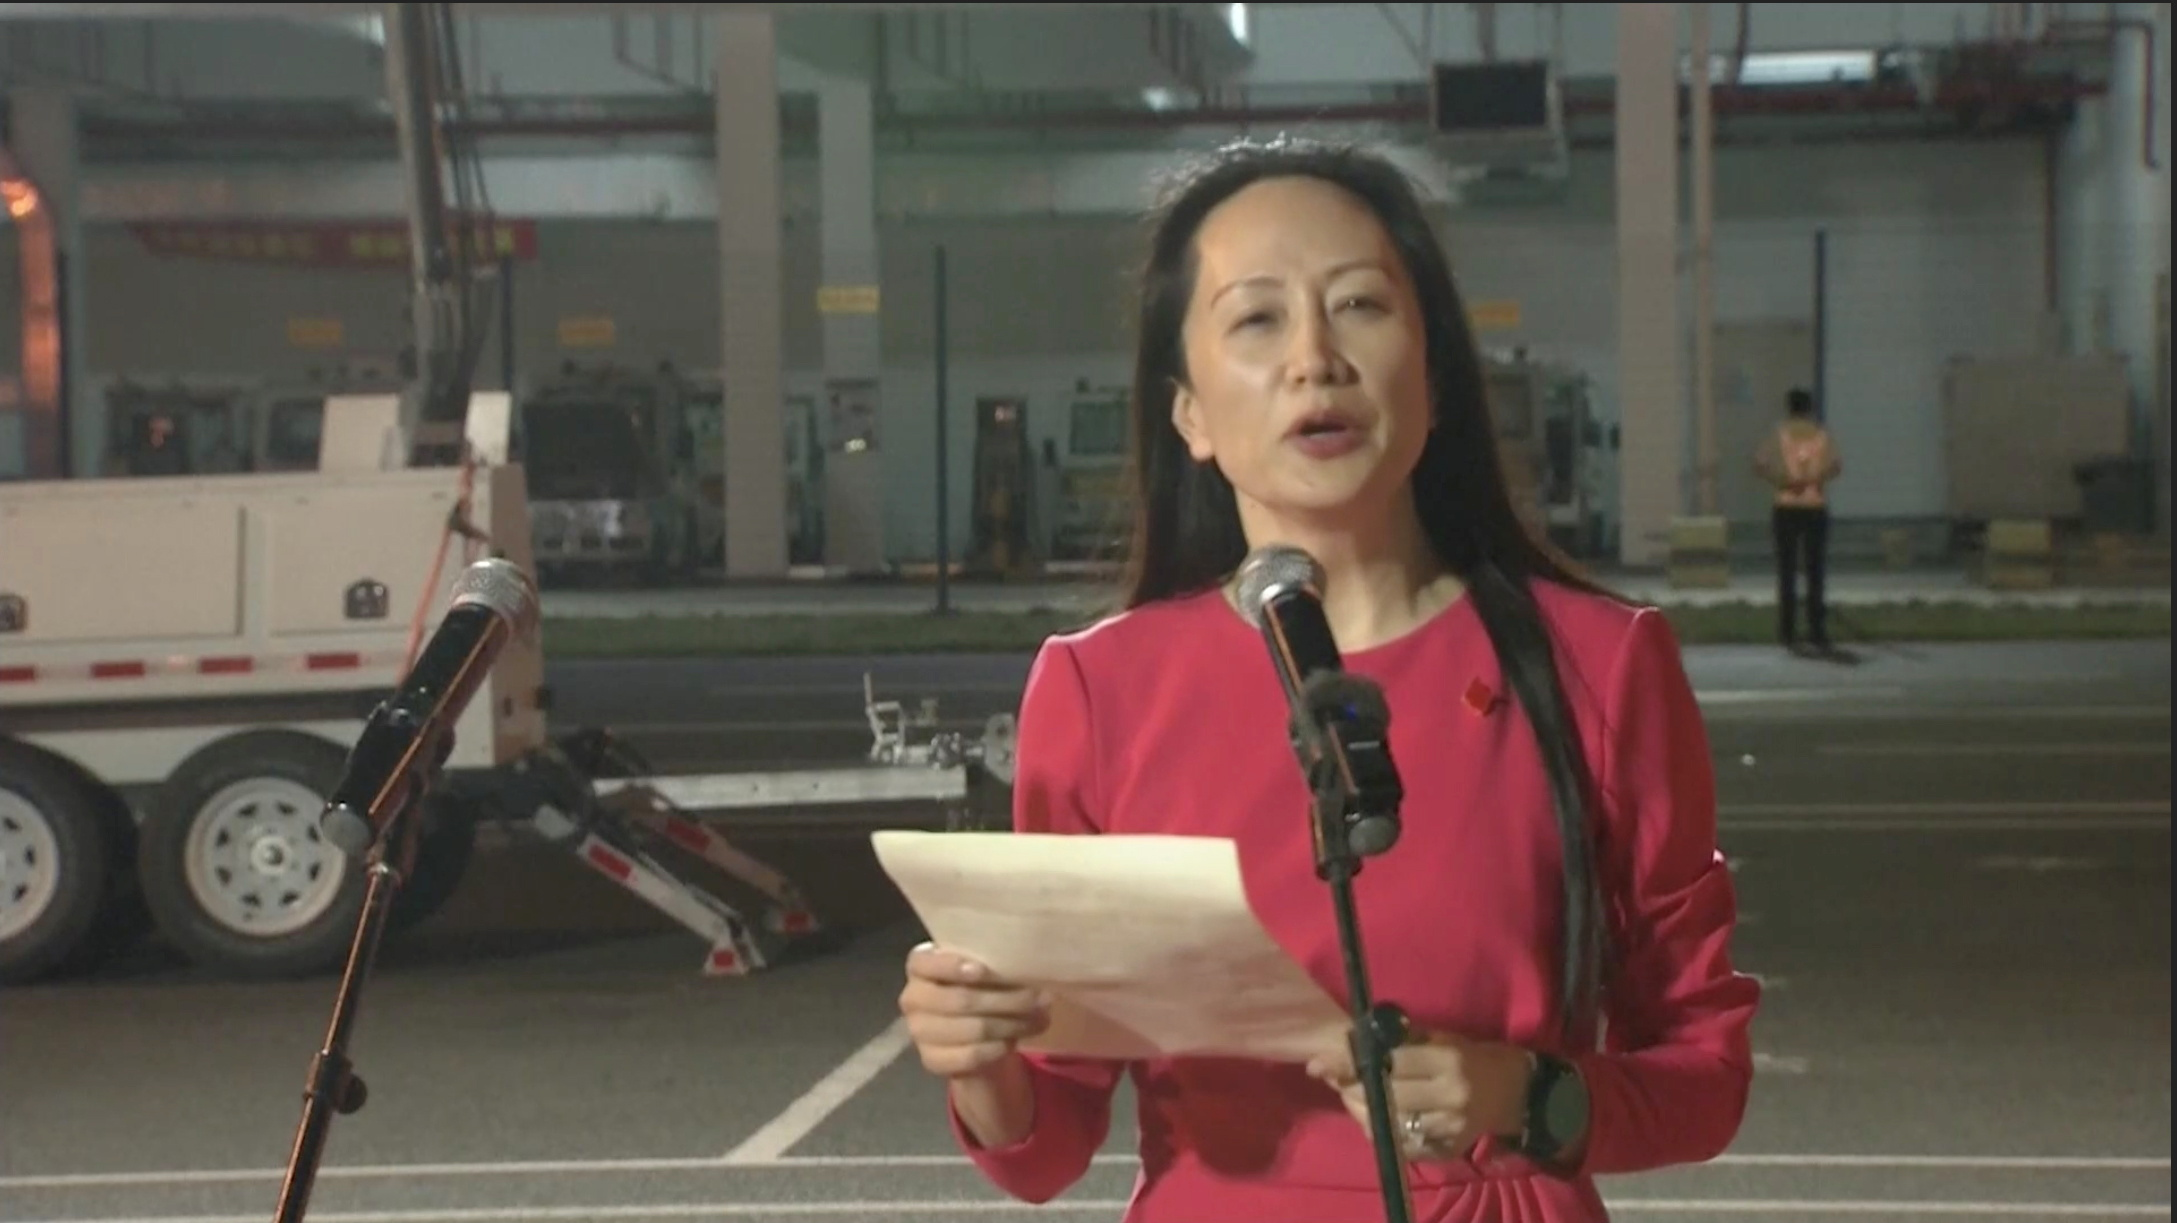 Huawei Technologies Chief Financial Officer Meng Wanzhou speaks upon arriving from Canada at Shenzhen Baoan International Airport, in Shenzhen, Guangdong province, China September 25, 2021. CCTV via REUTERS TV  ATTENTION EDITORS - THIS IMAGE WAS PROVIDED BY A THIRD PARTY. NO RESALES. NO ARCHIVES. CHINA OUT.